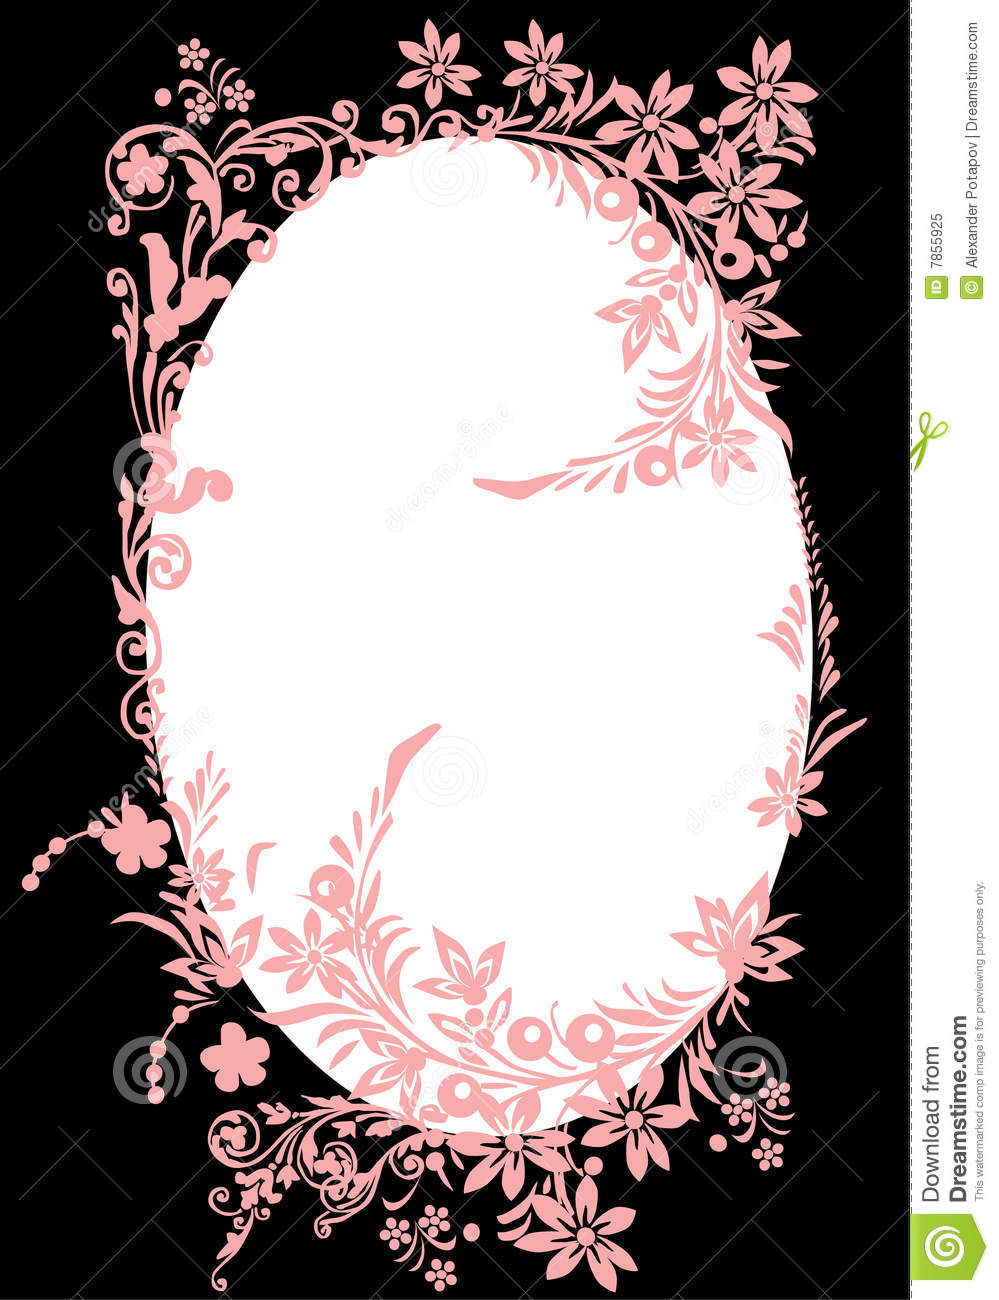 Purple And Black Damask Wallpaper Oval Pink Frame With Curles On Black Stock Illustration